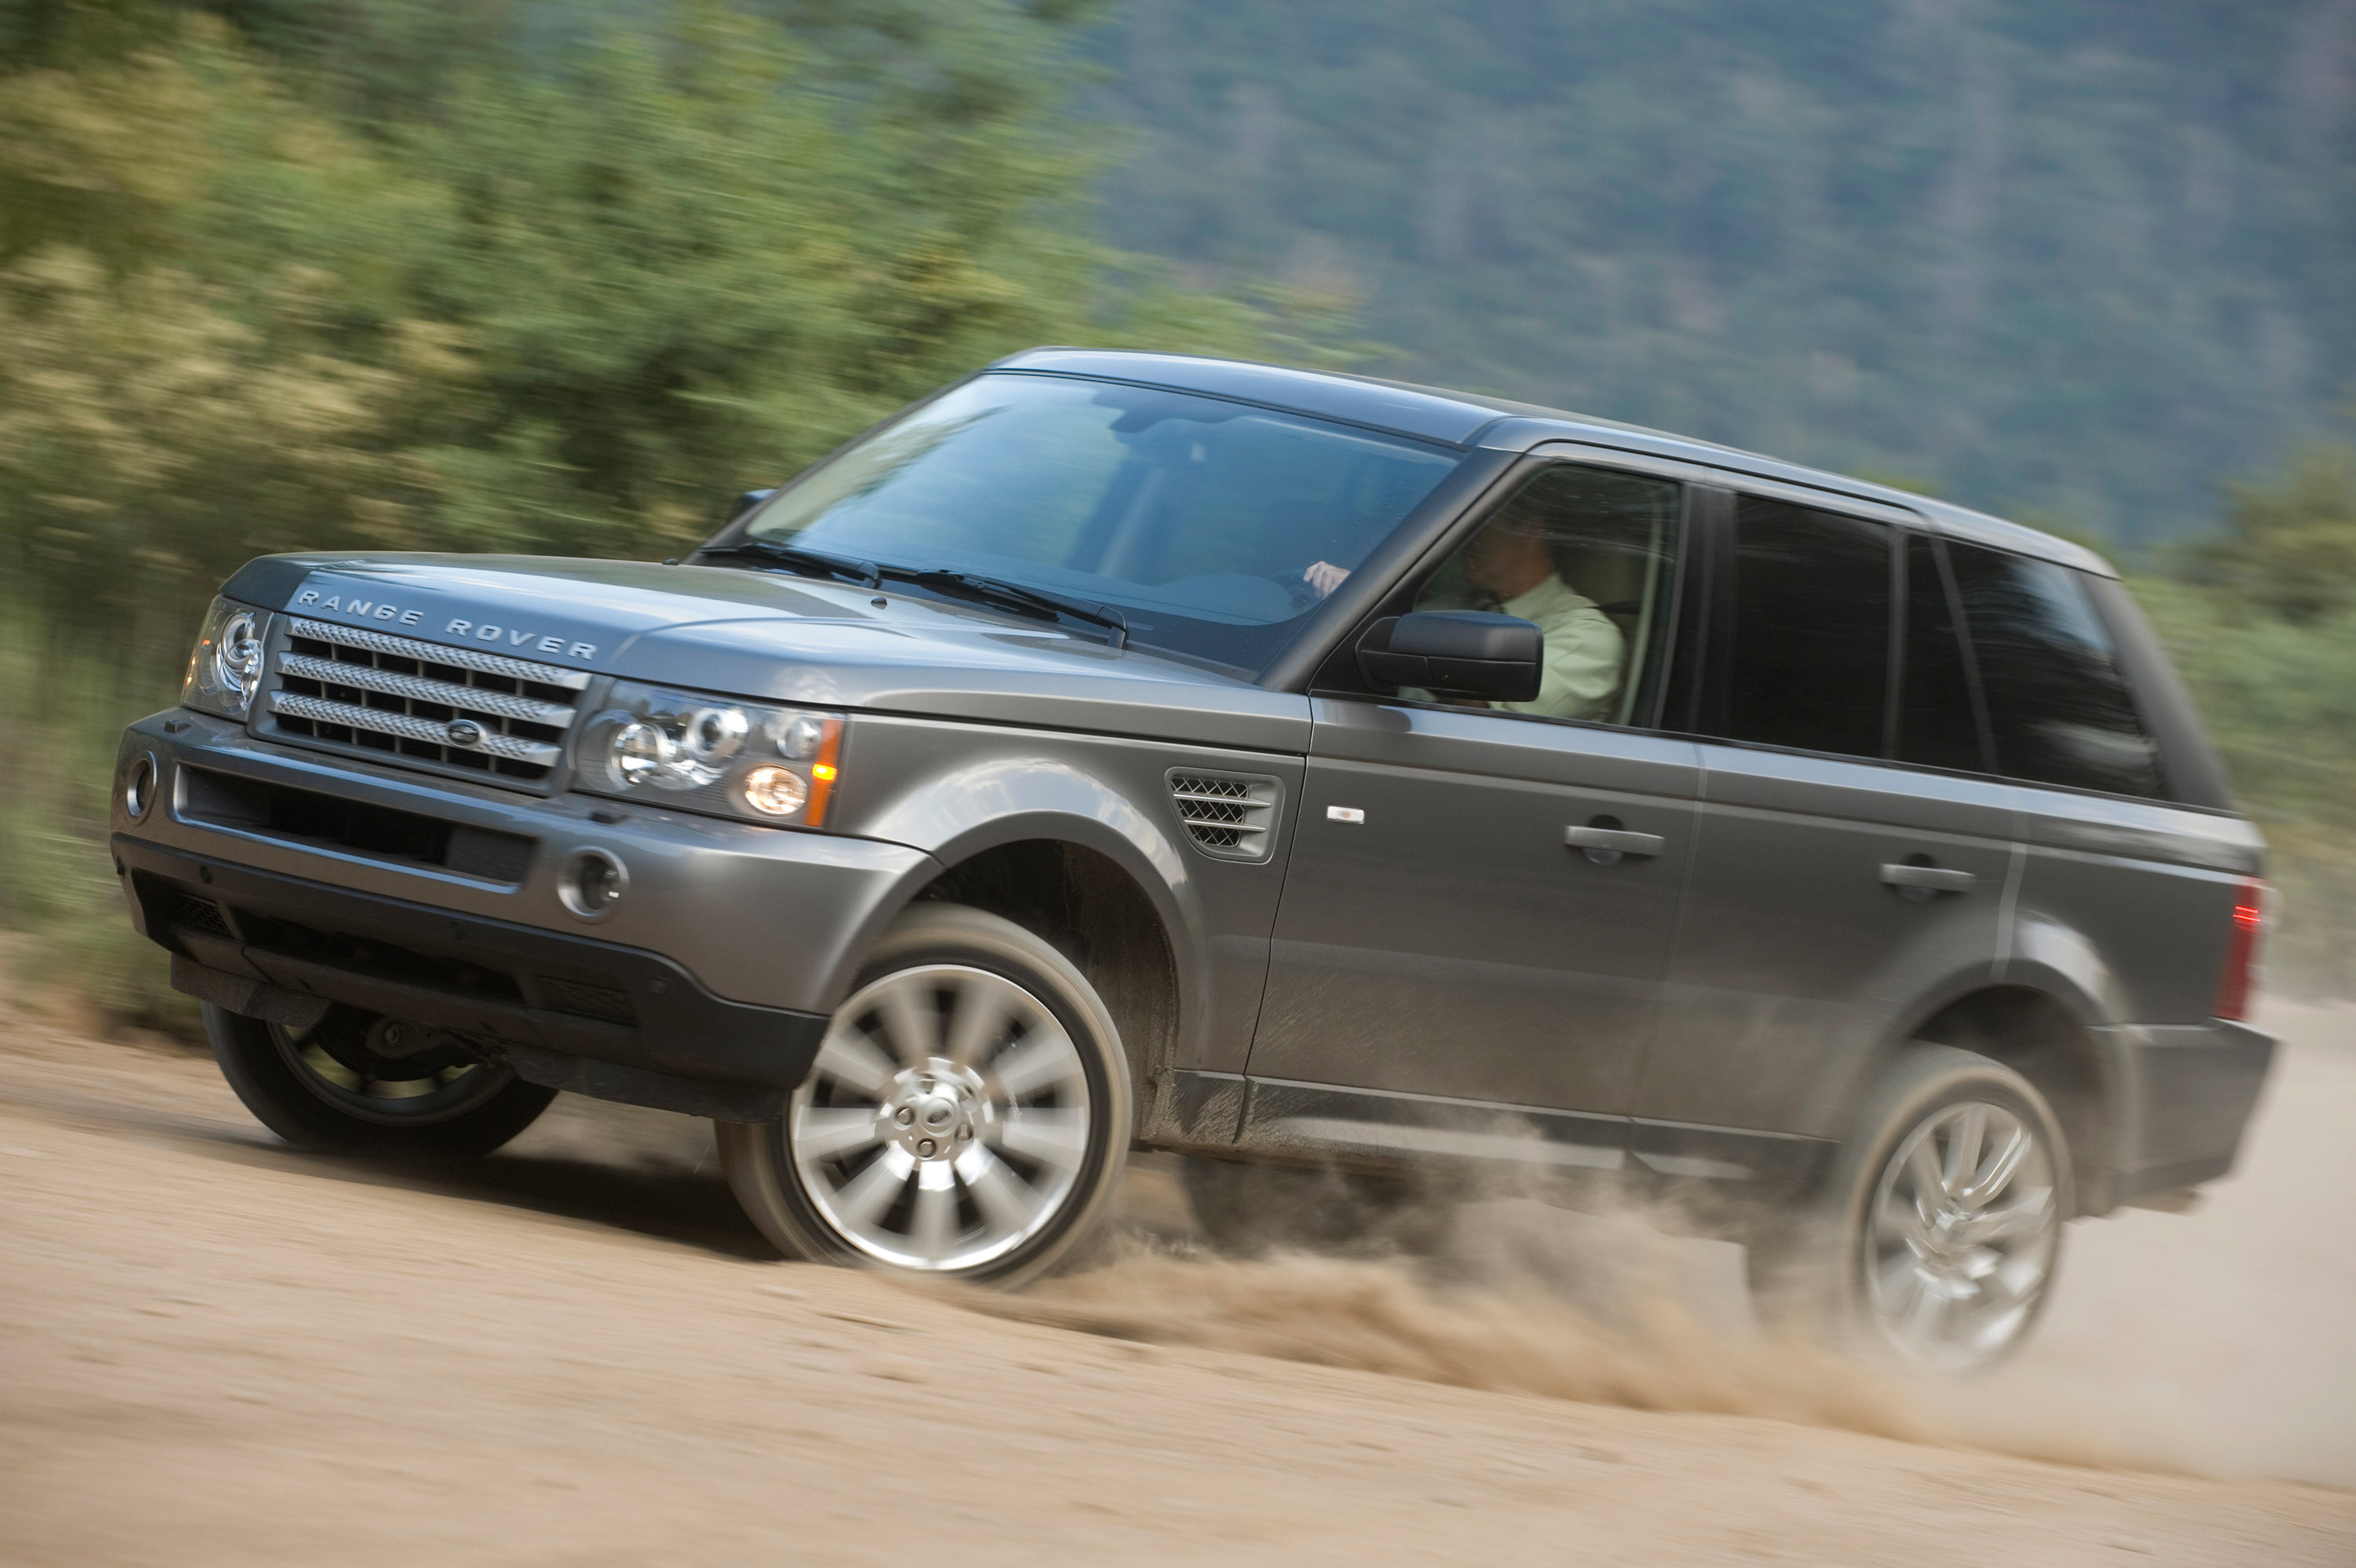 2009 Range Rover Sport Supercharged - Picture 10982